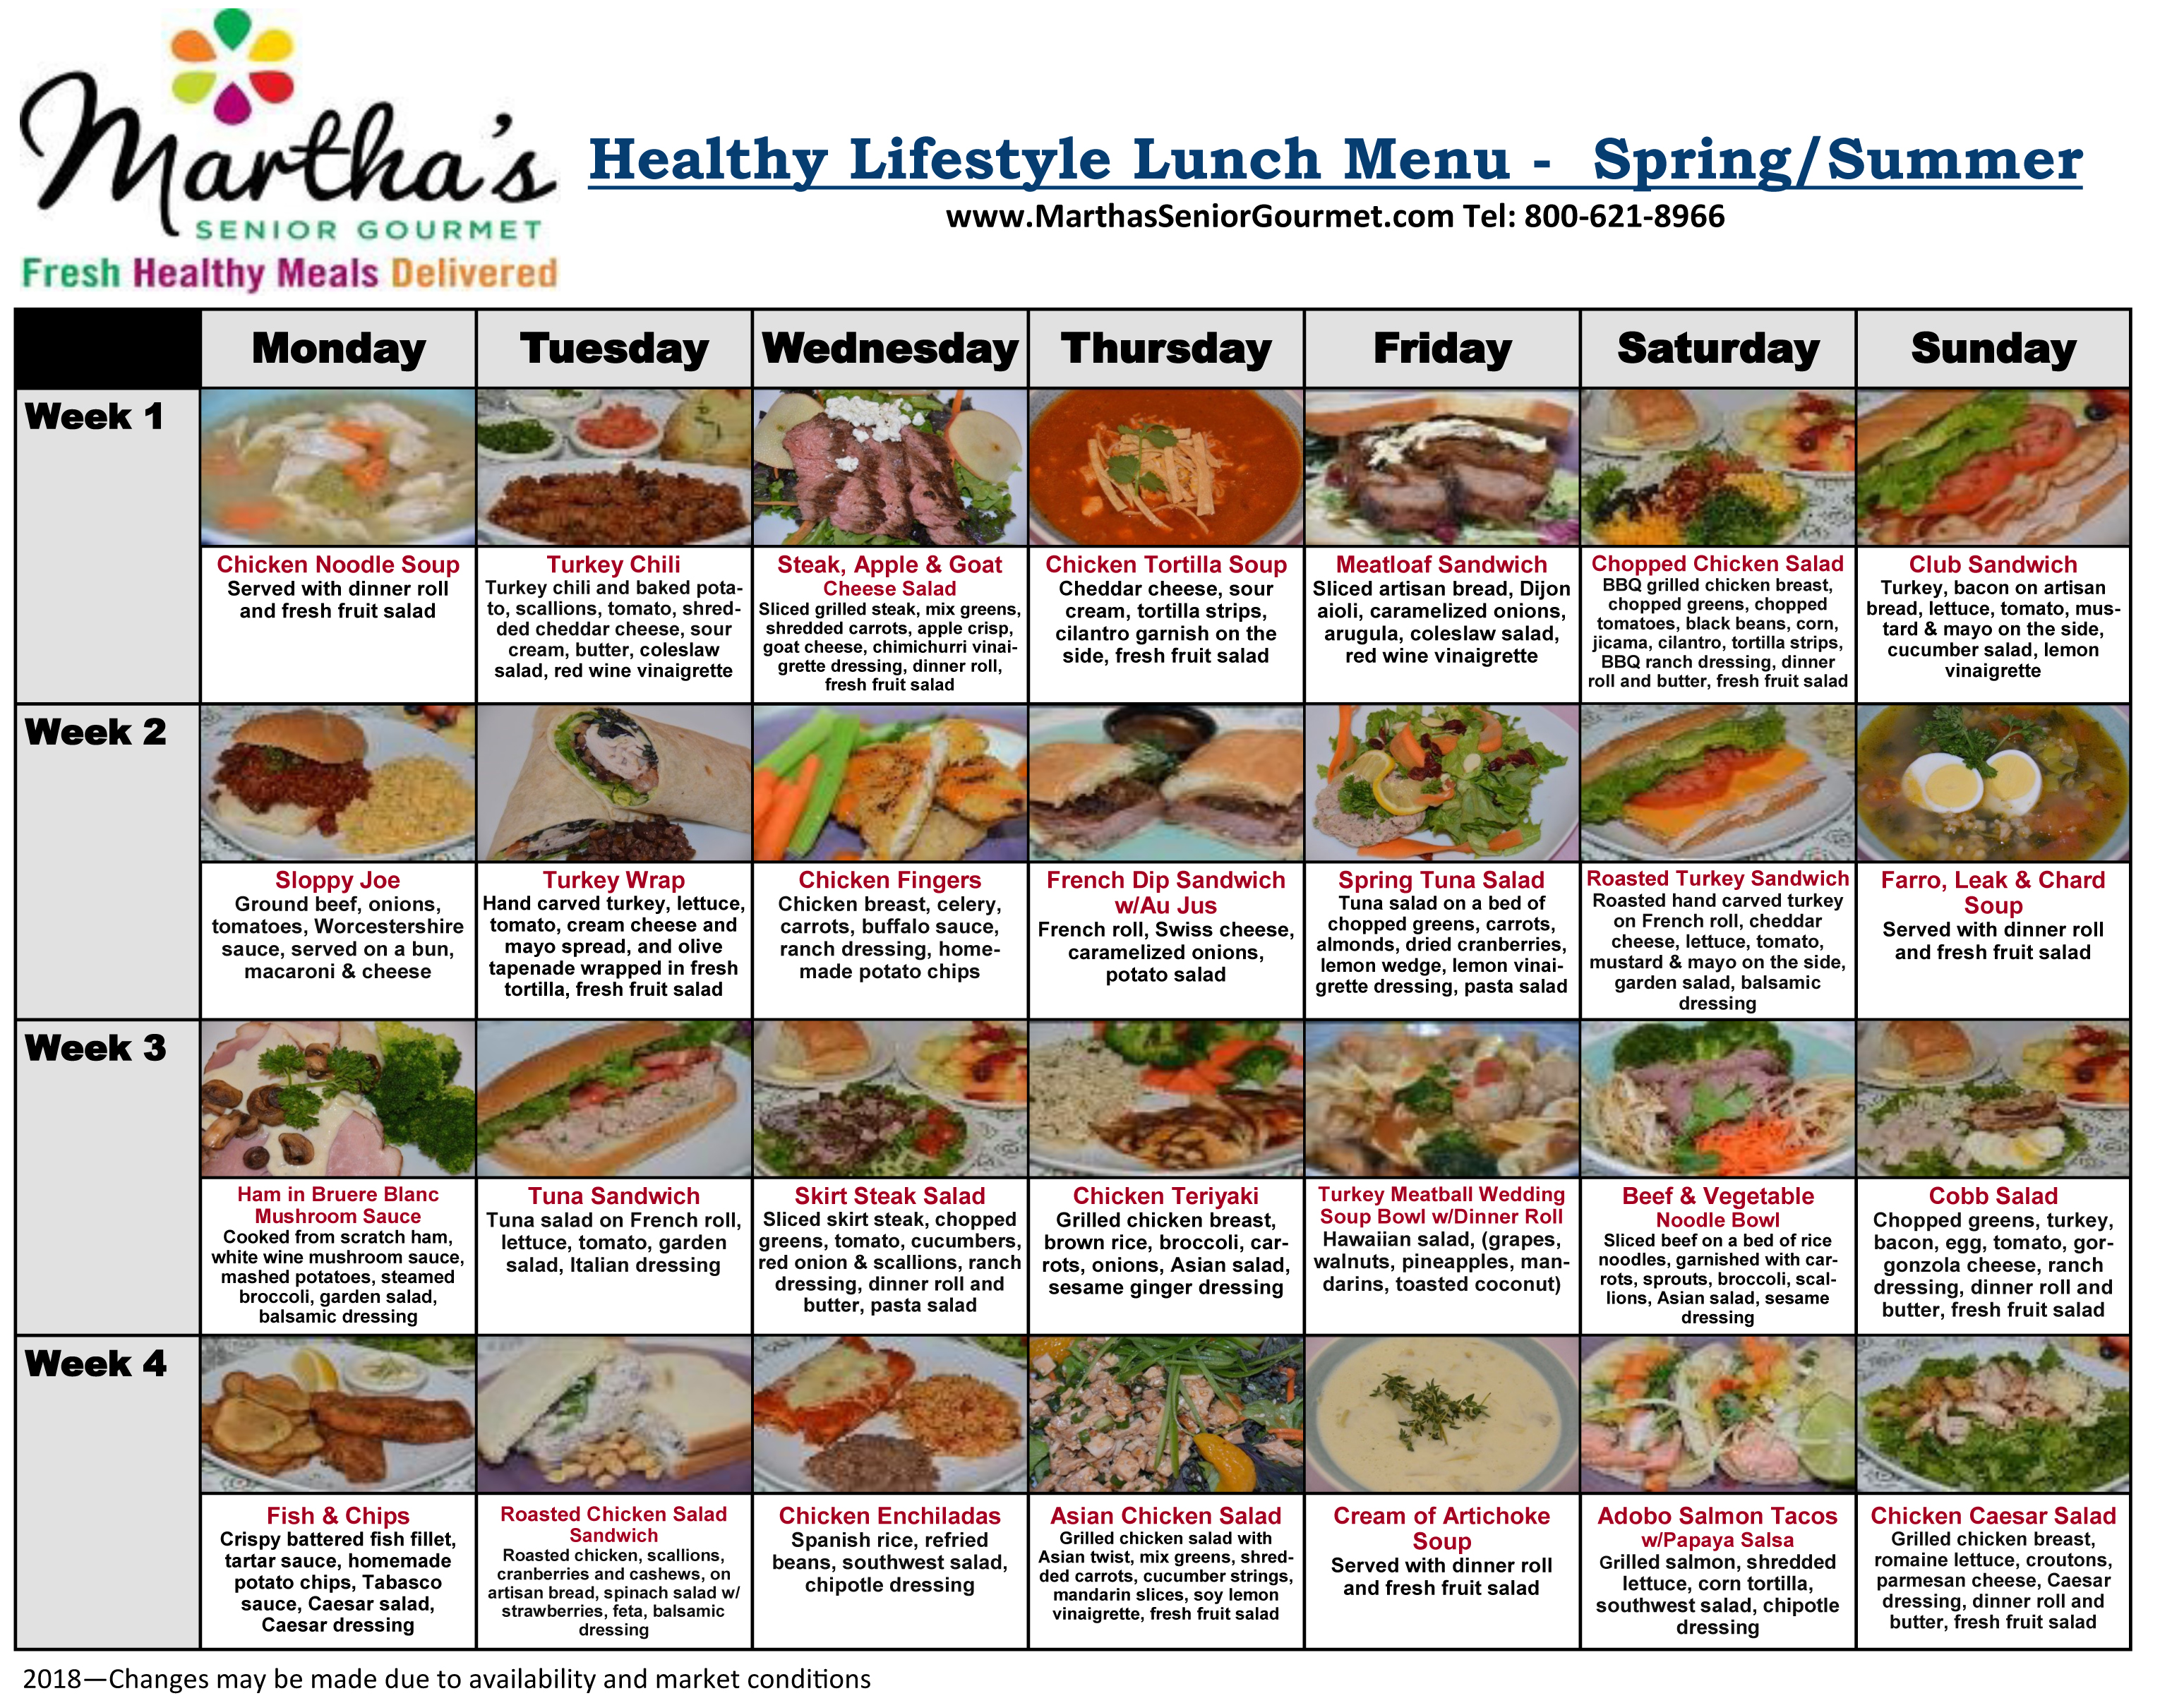 Healthy Lifestyle Lunch Menu - Spring/Summer